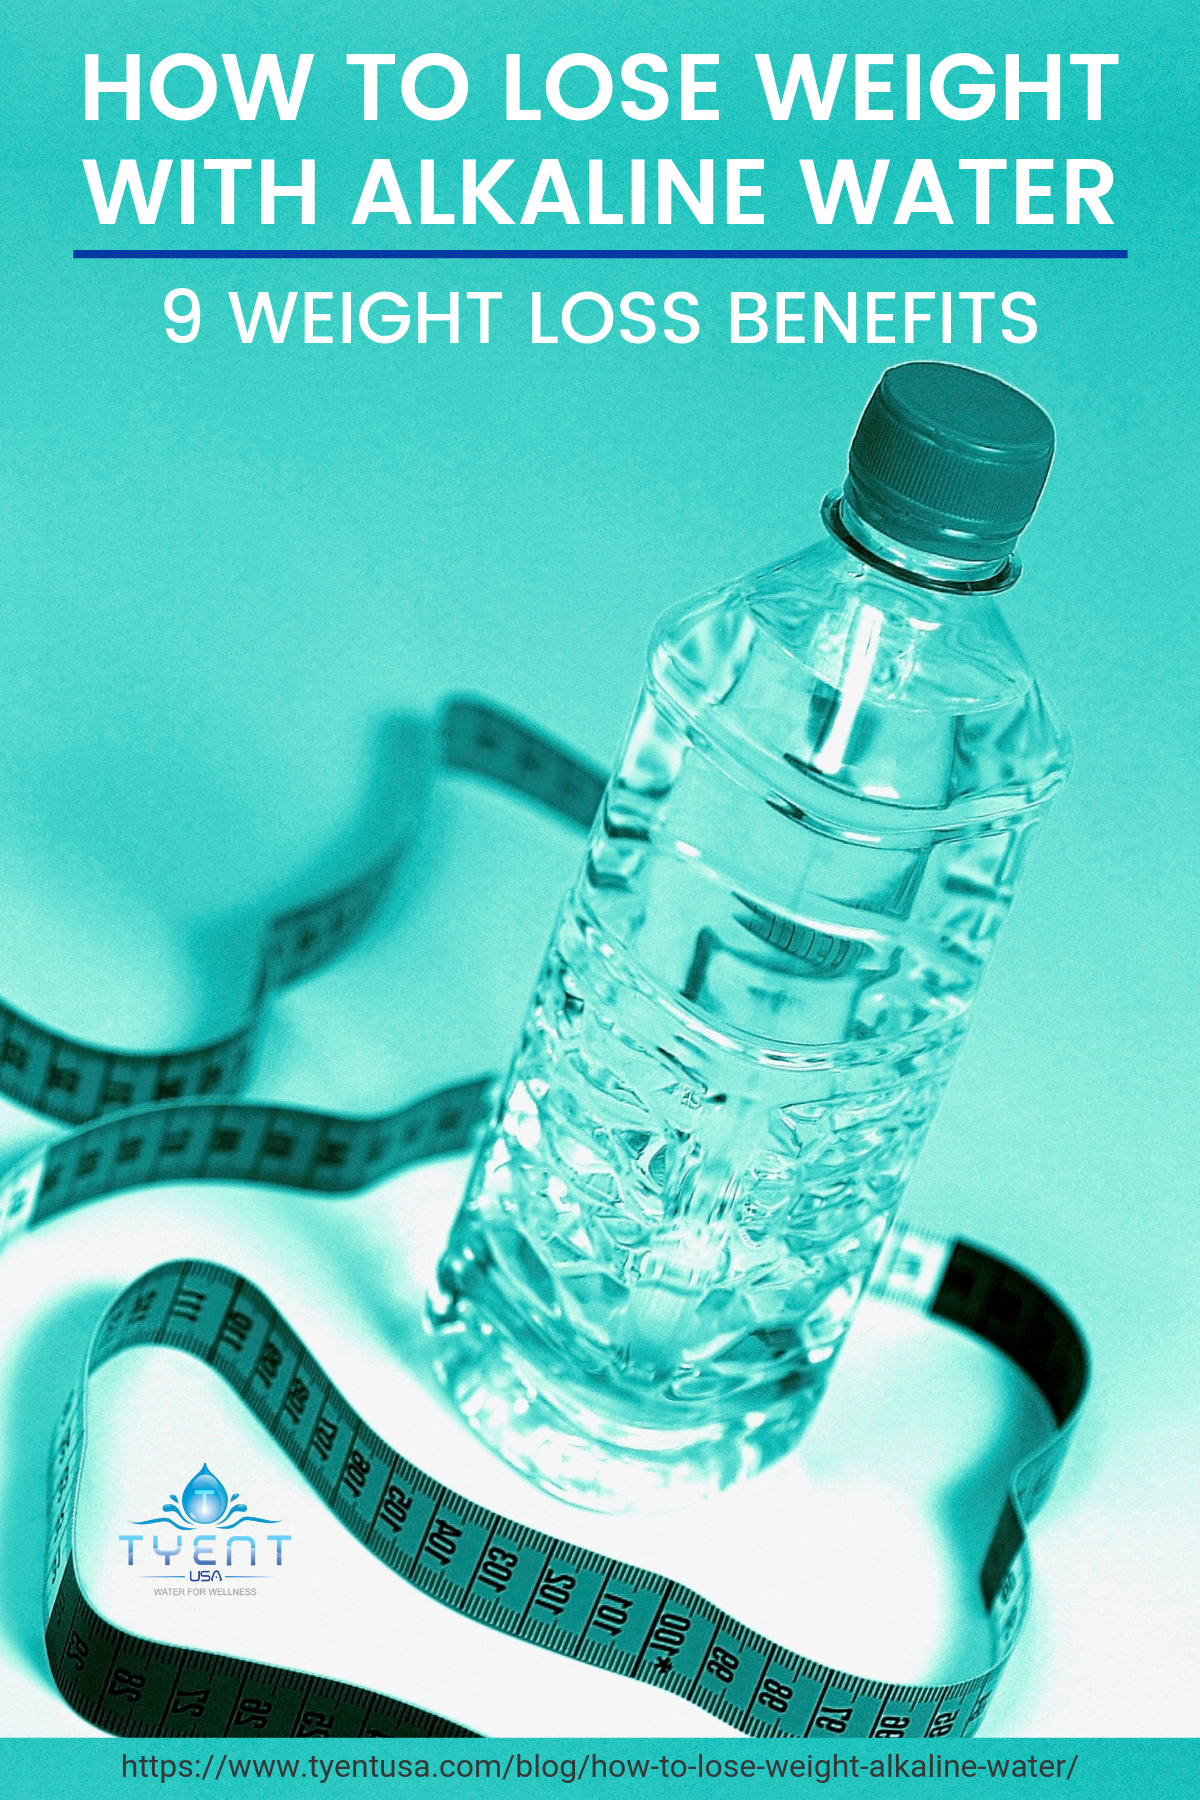 How To Lose Weight With Alkaline Water | 9 Weight Loss Benefits https://www.tyentusa.com/blog/how-to-lose-weight-alkaline-water/